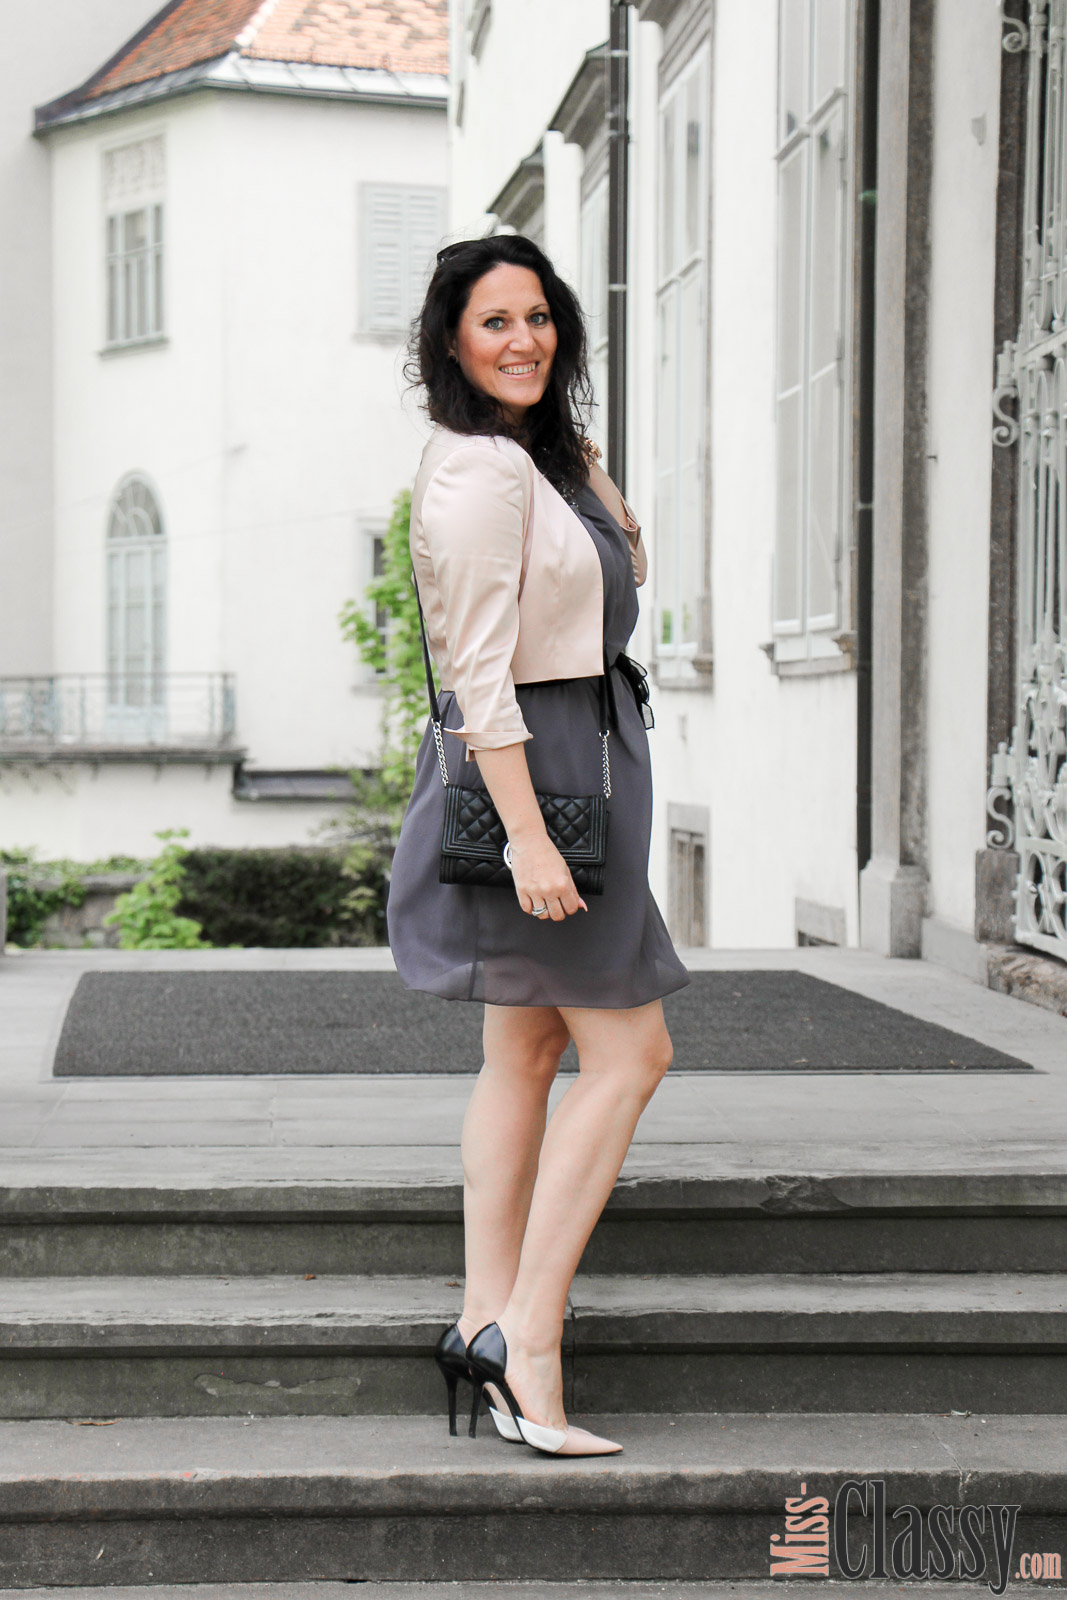 OUTFIT Kleid mit Ziersteinen und rosa Jäckchen, Miss Classy, miss-classy.com, Fashionblog, Fashionblogger, Fashionblog Graz, Lifestyleblog Graz, Graz, Steiermark, Österreich, classy, beclassy, classy Fashion, Outfit, Style, Fashion, Mode, OOTD, Lippenstift MAC, MAC Cosmetics, High Heels, Zara, Sonnenbrille Burberry, Clutch Michael Kors, Kleid Cartoon, Jäckchen Mariposa